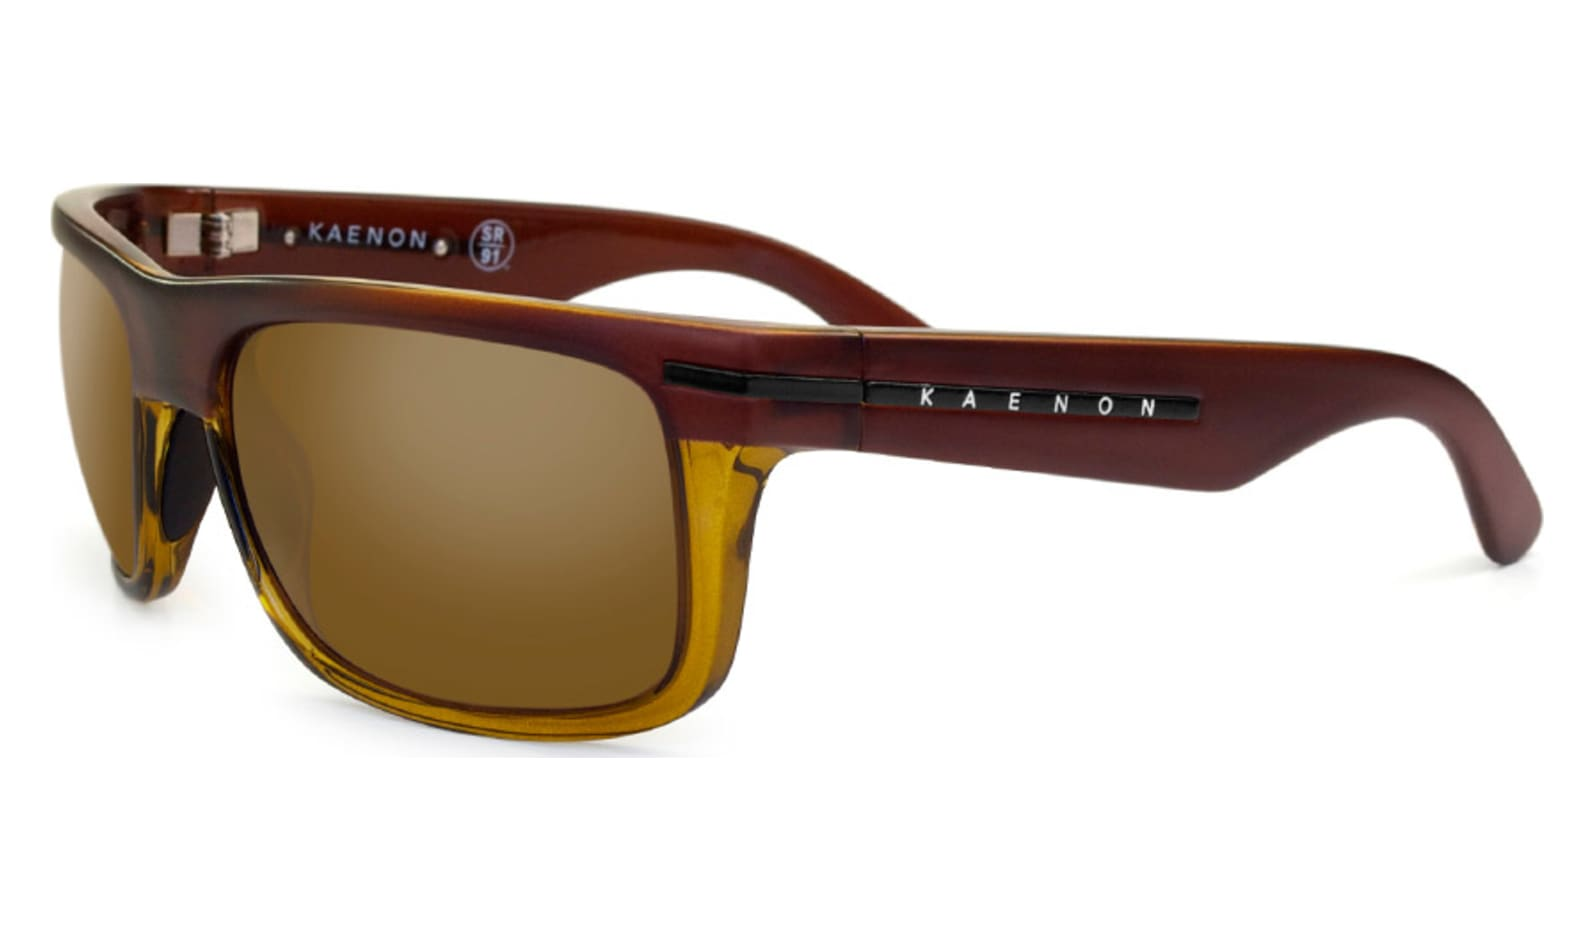 e763002648c If You Buy Polarized Sunglasses How Can You Be Sure They Are Truly ...